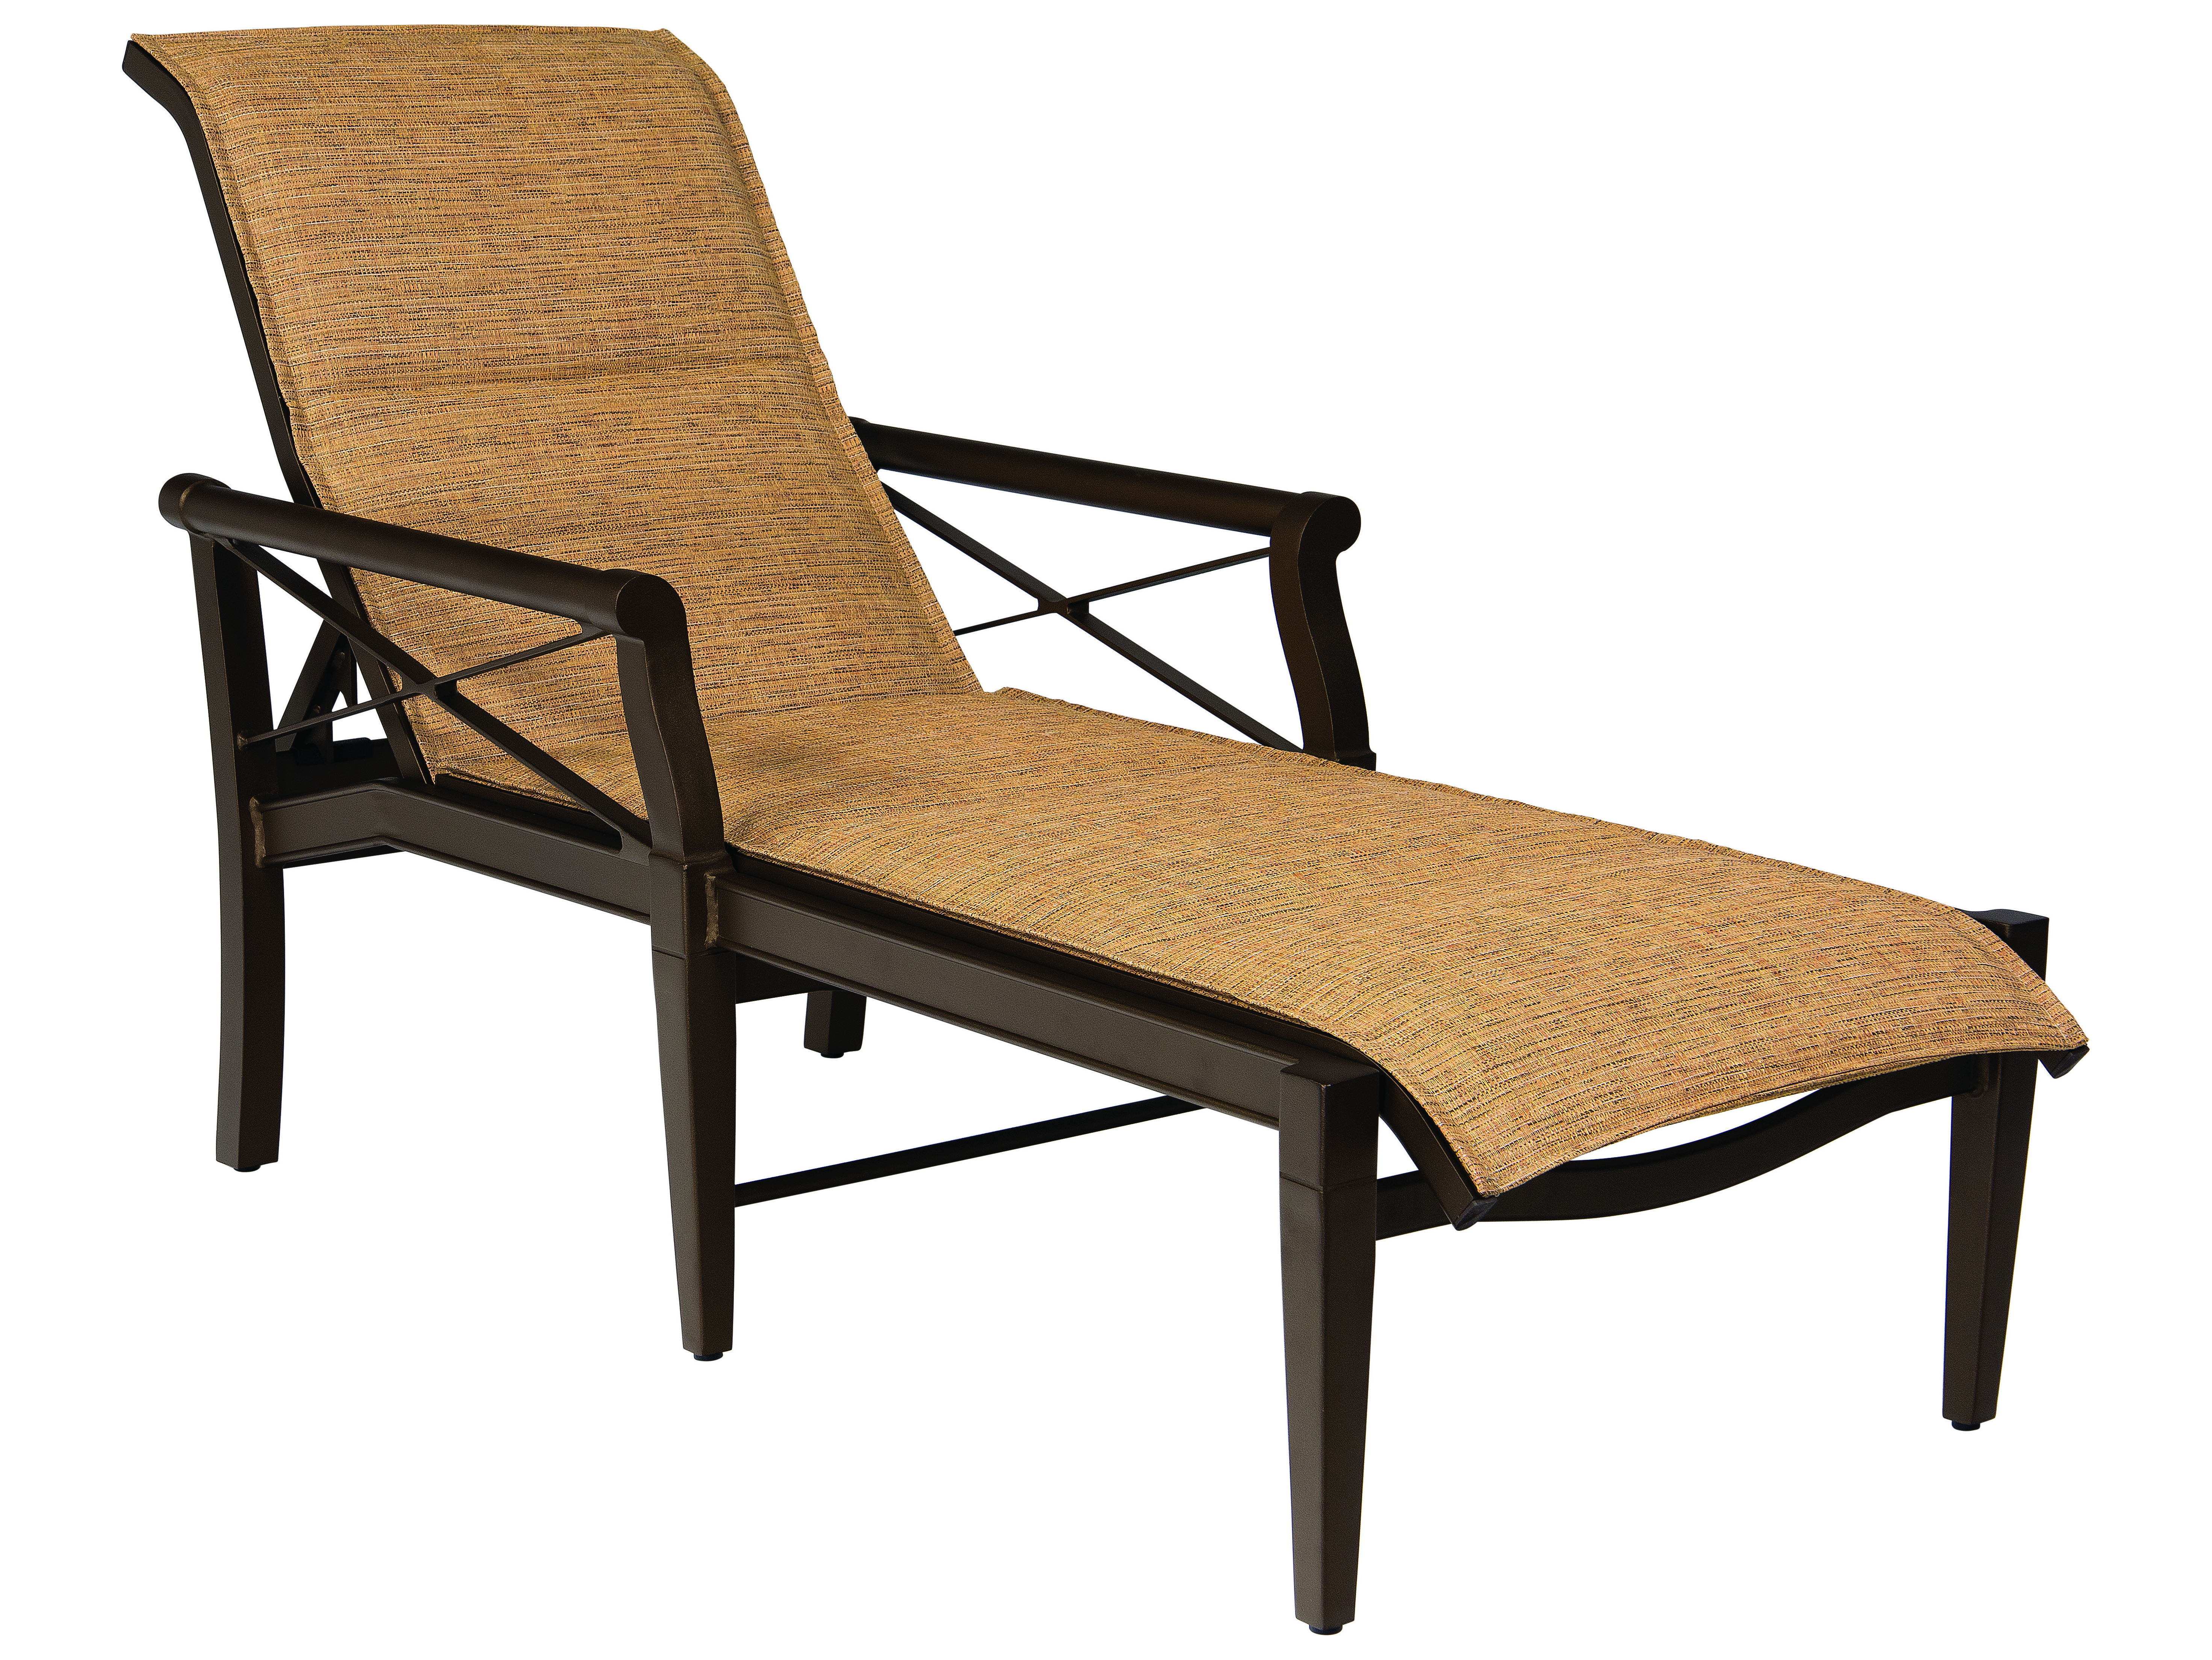 Woodard Andover Padded Sling Chaise Lounge